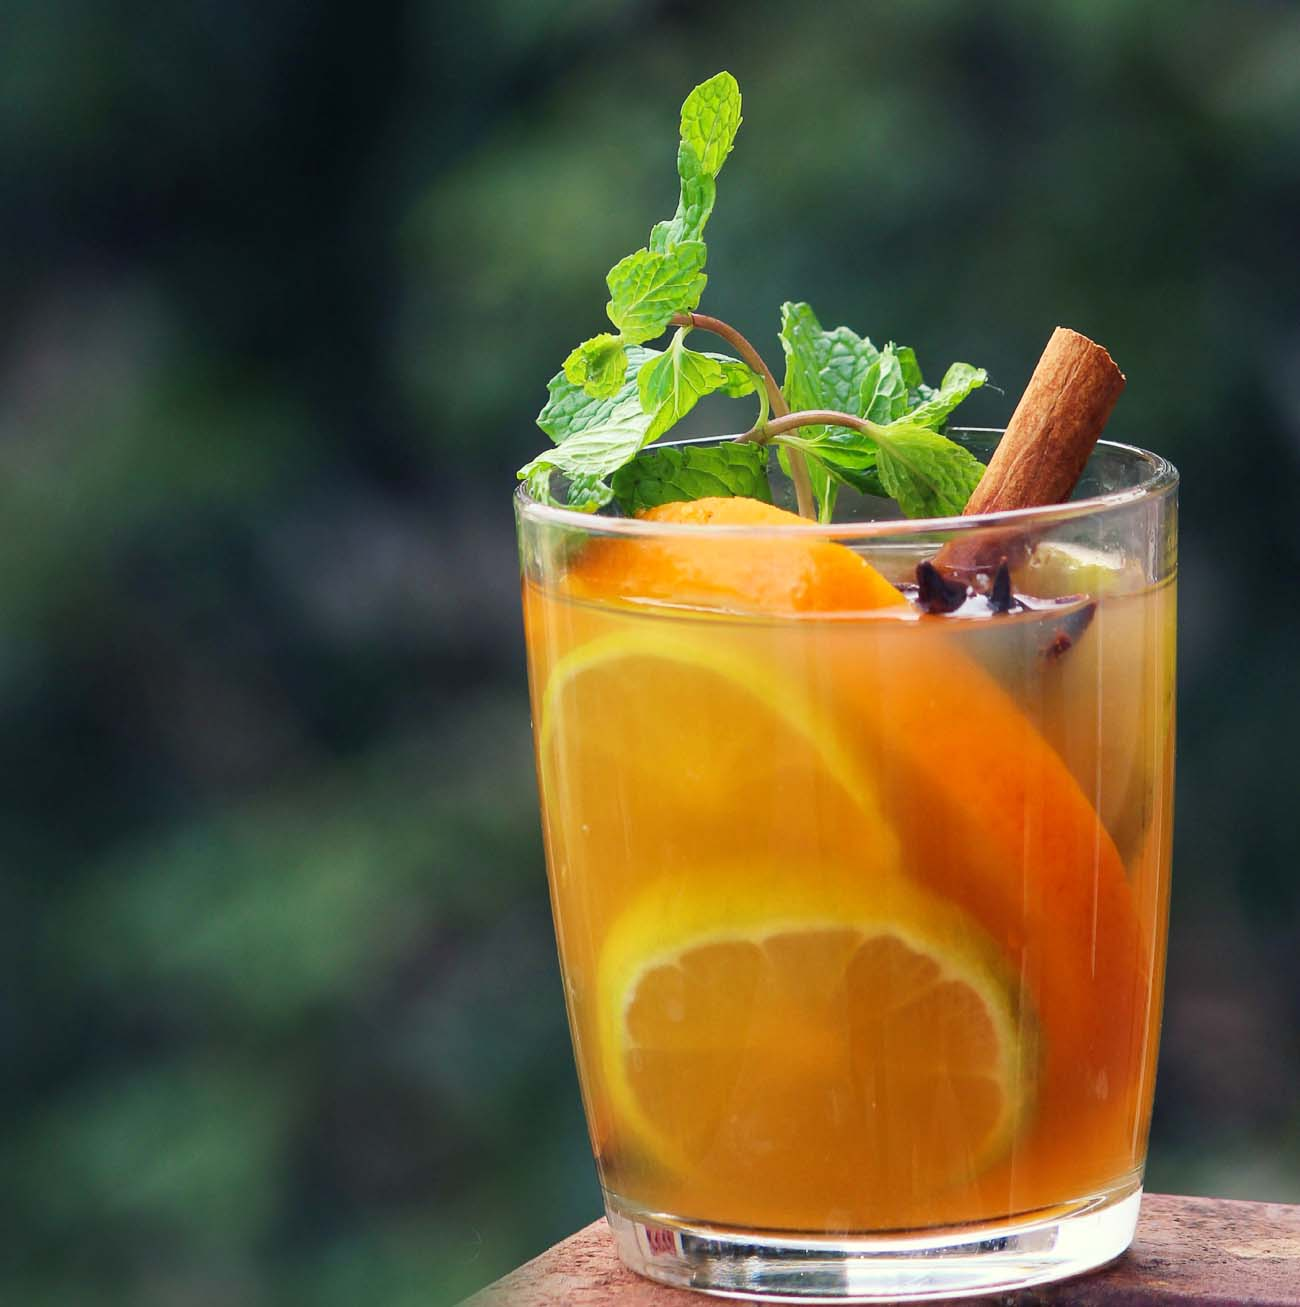 Cinnamon Spiced Orange Iced Tea Recipe